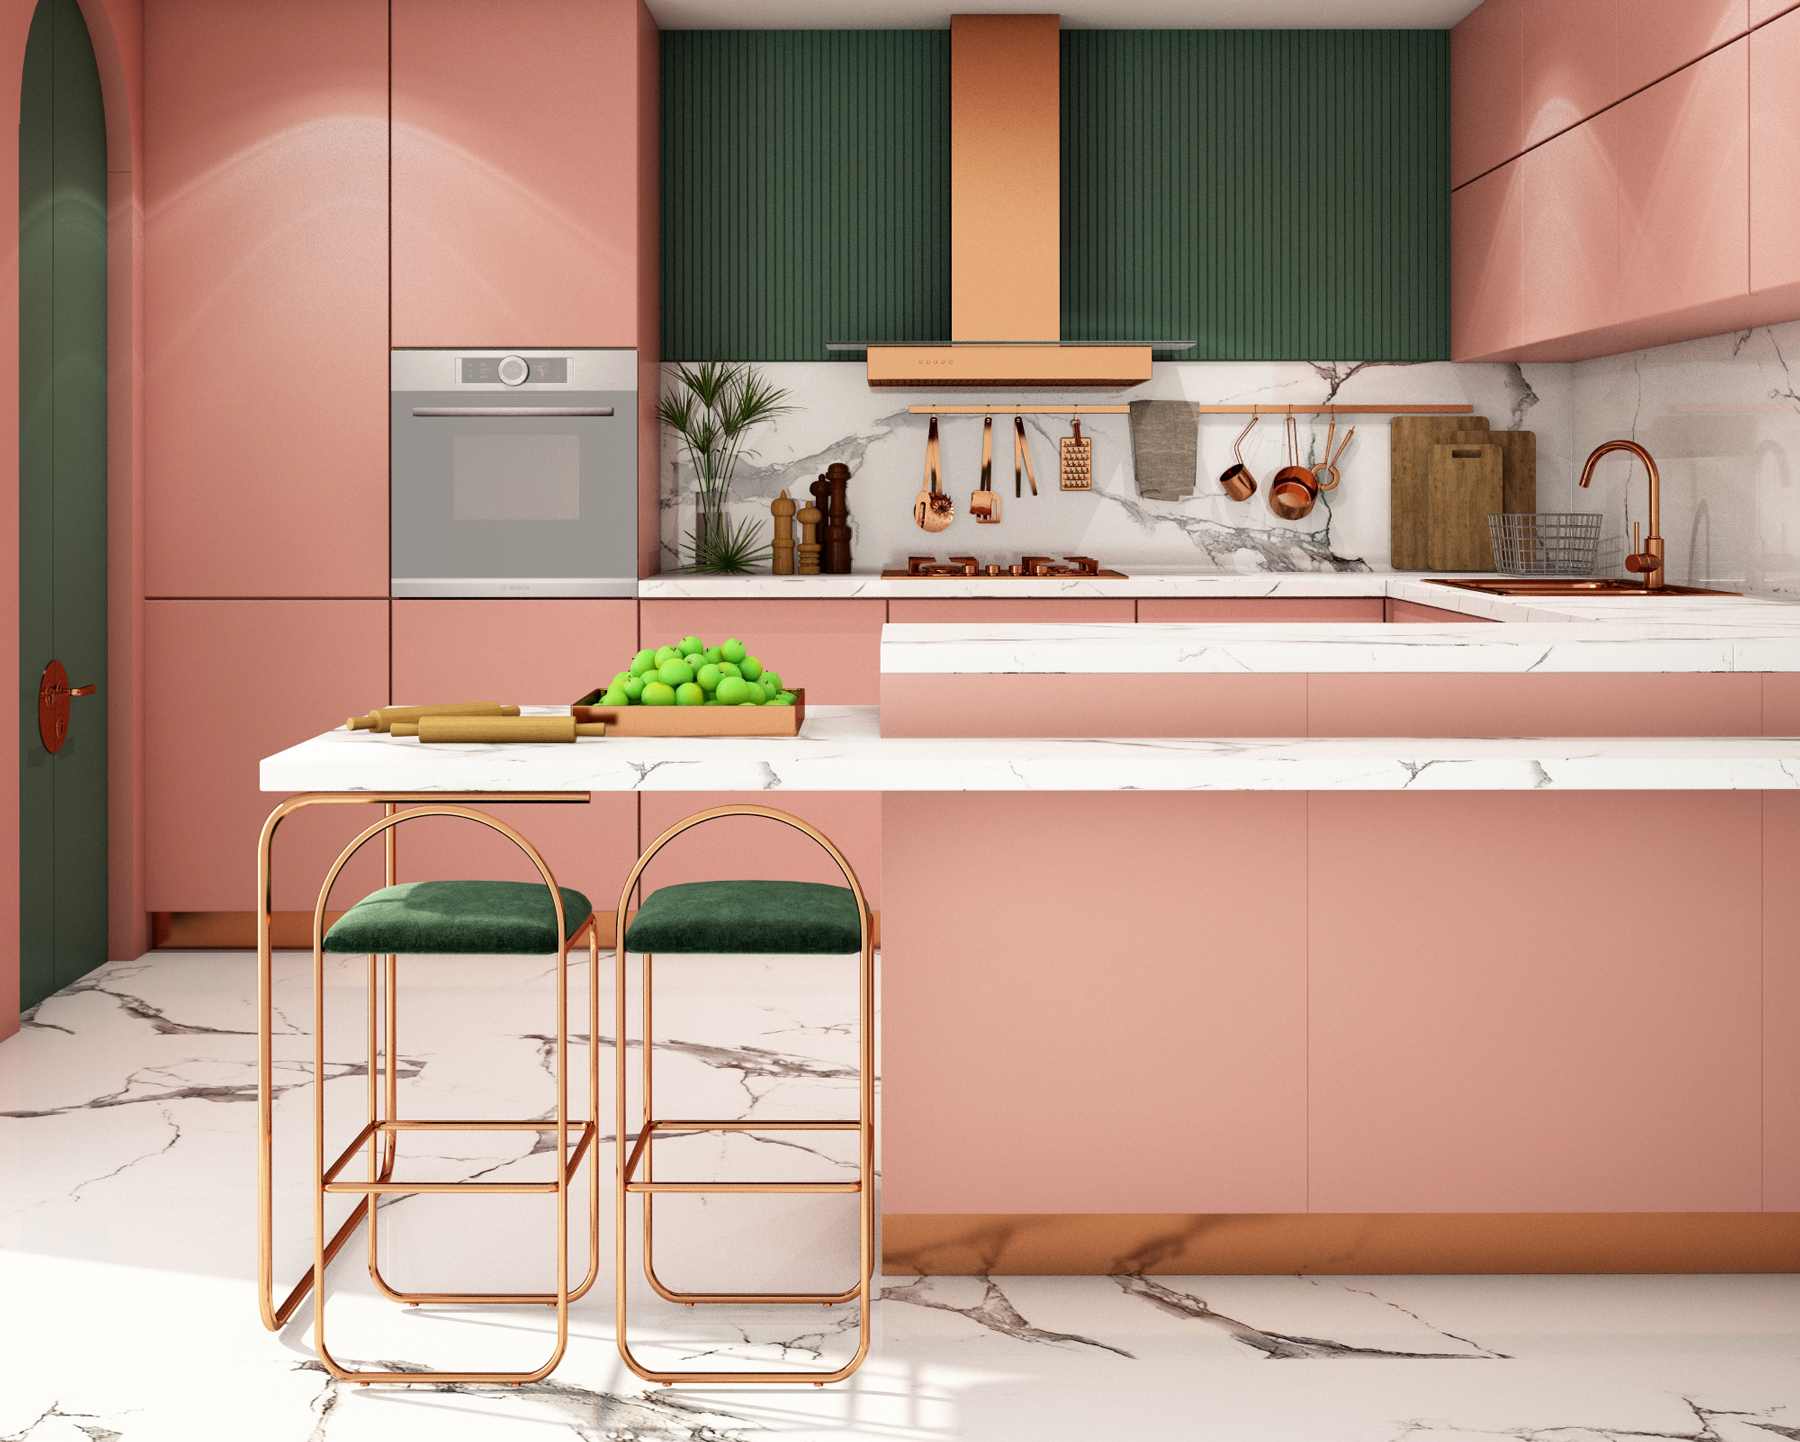 How To Paint Kitchen Cabinets 7 Step